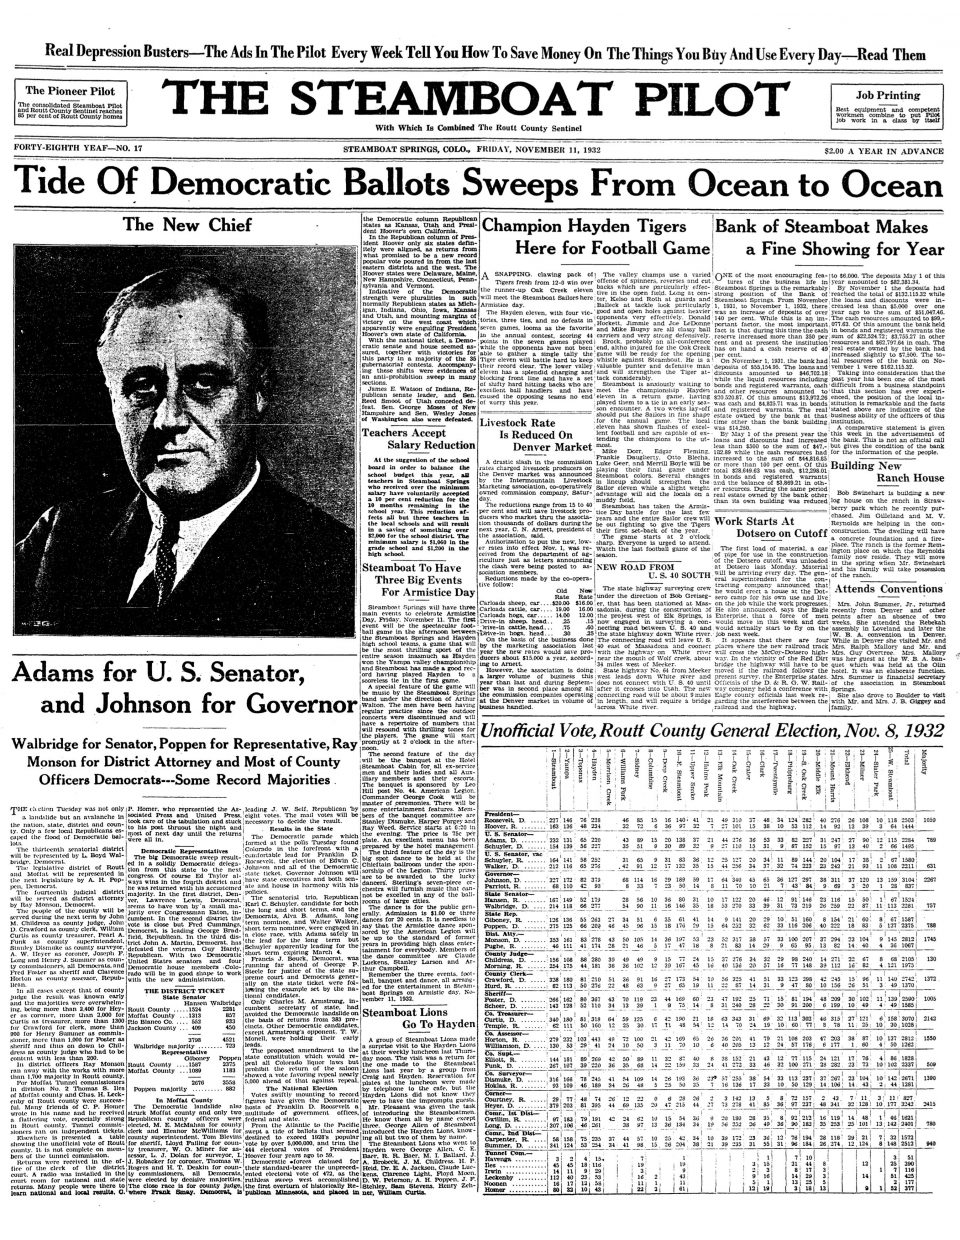 Front page of 1932 Steamboat Pilot